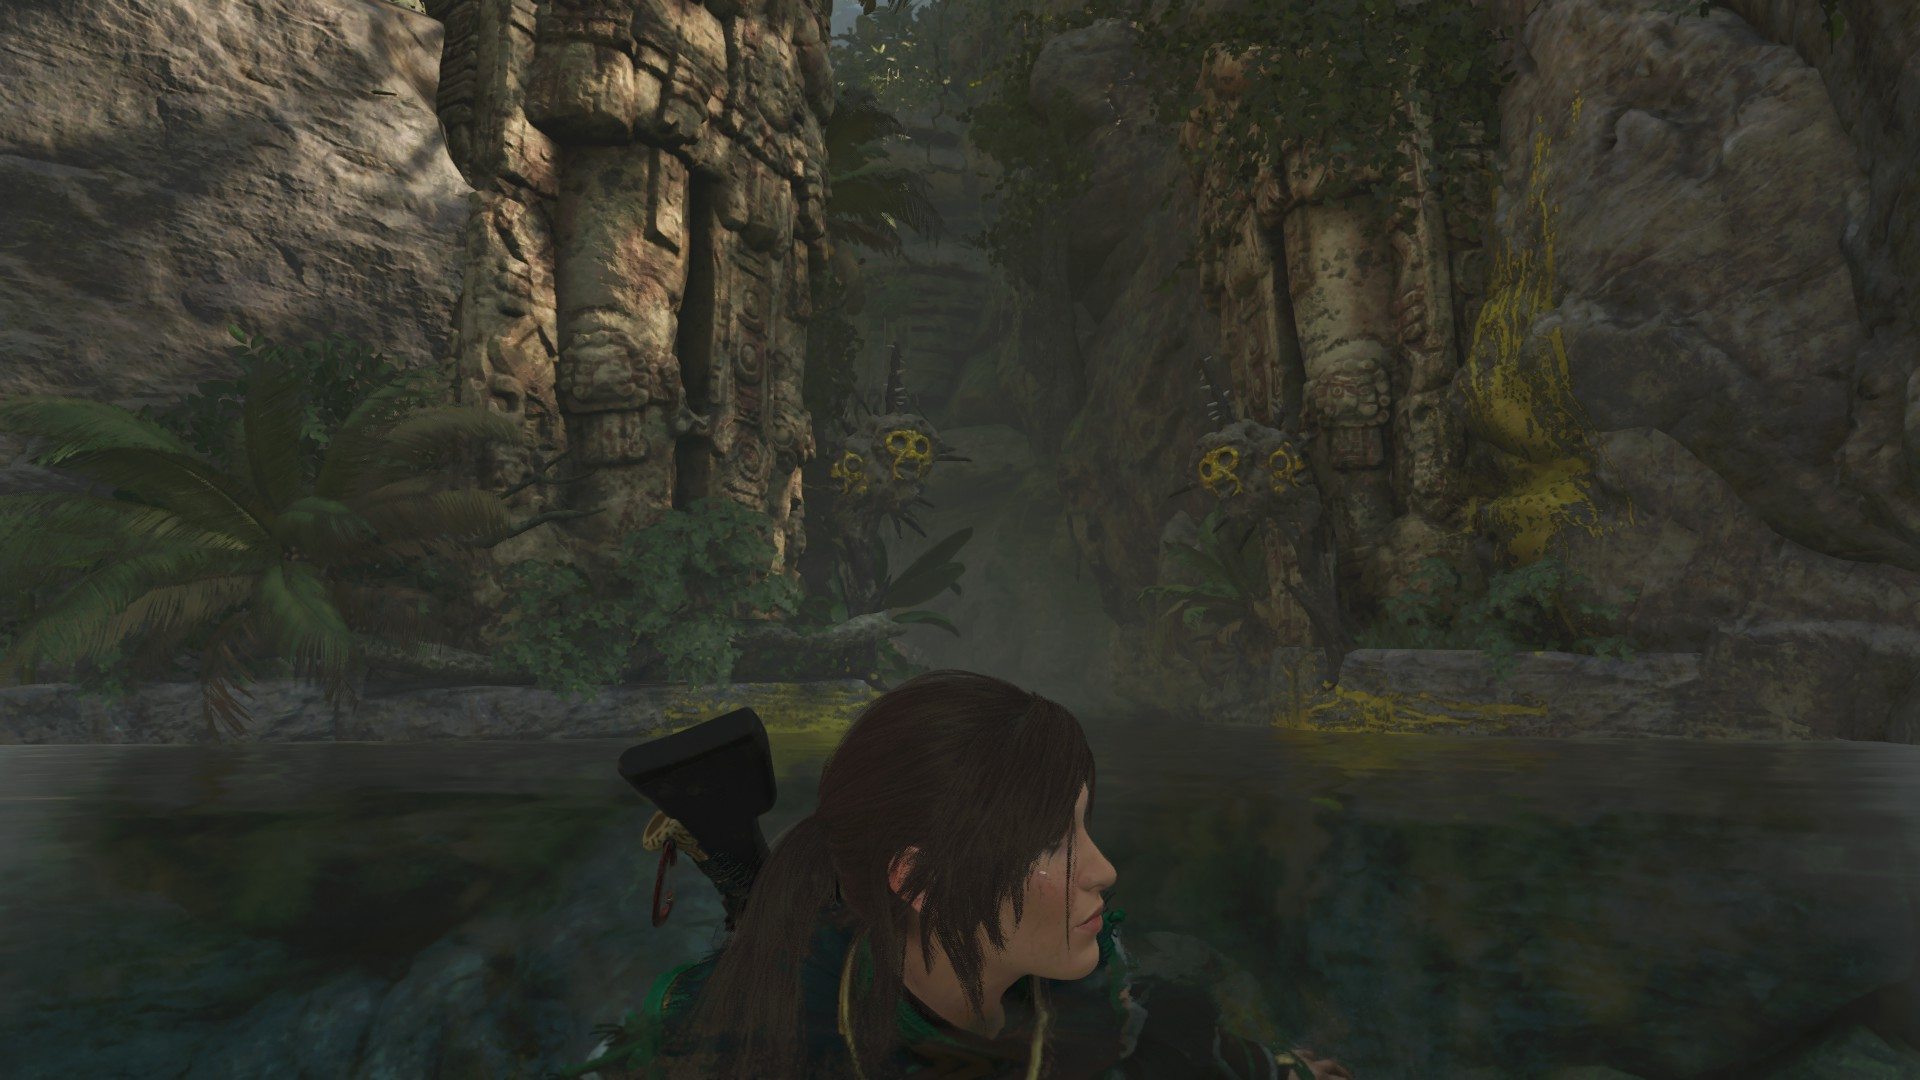 Lara swimming in the lake east of Ruined Tower base camp across the broken logs. She is outside the Thirsty Gods challenge tomb.